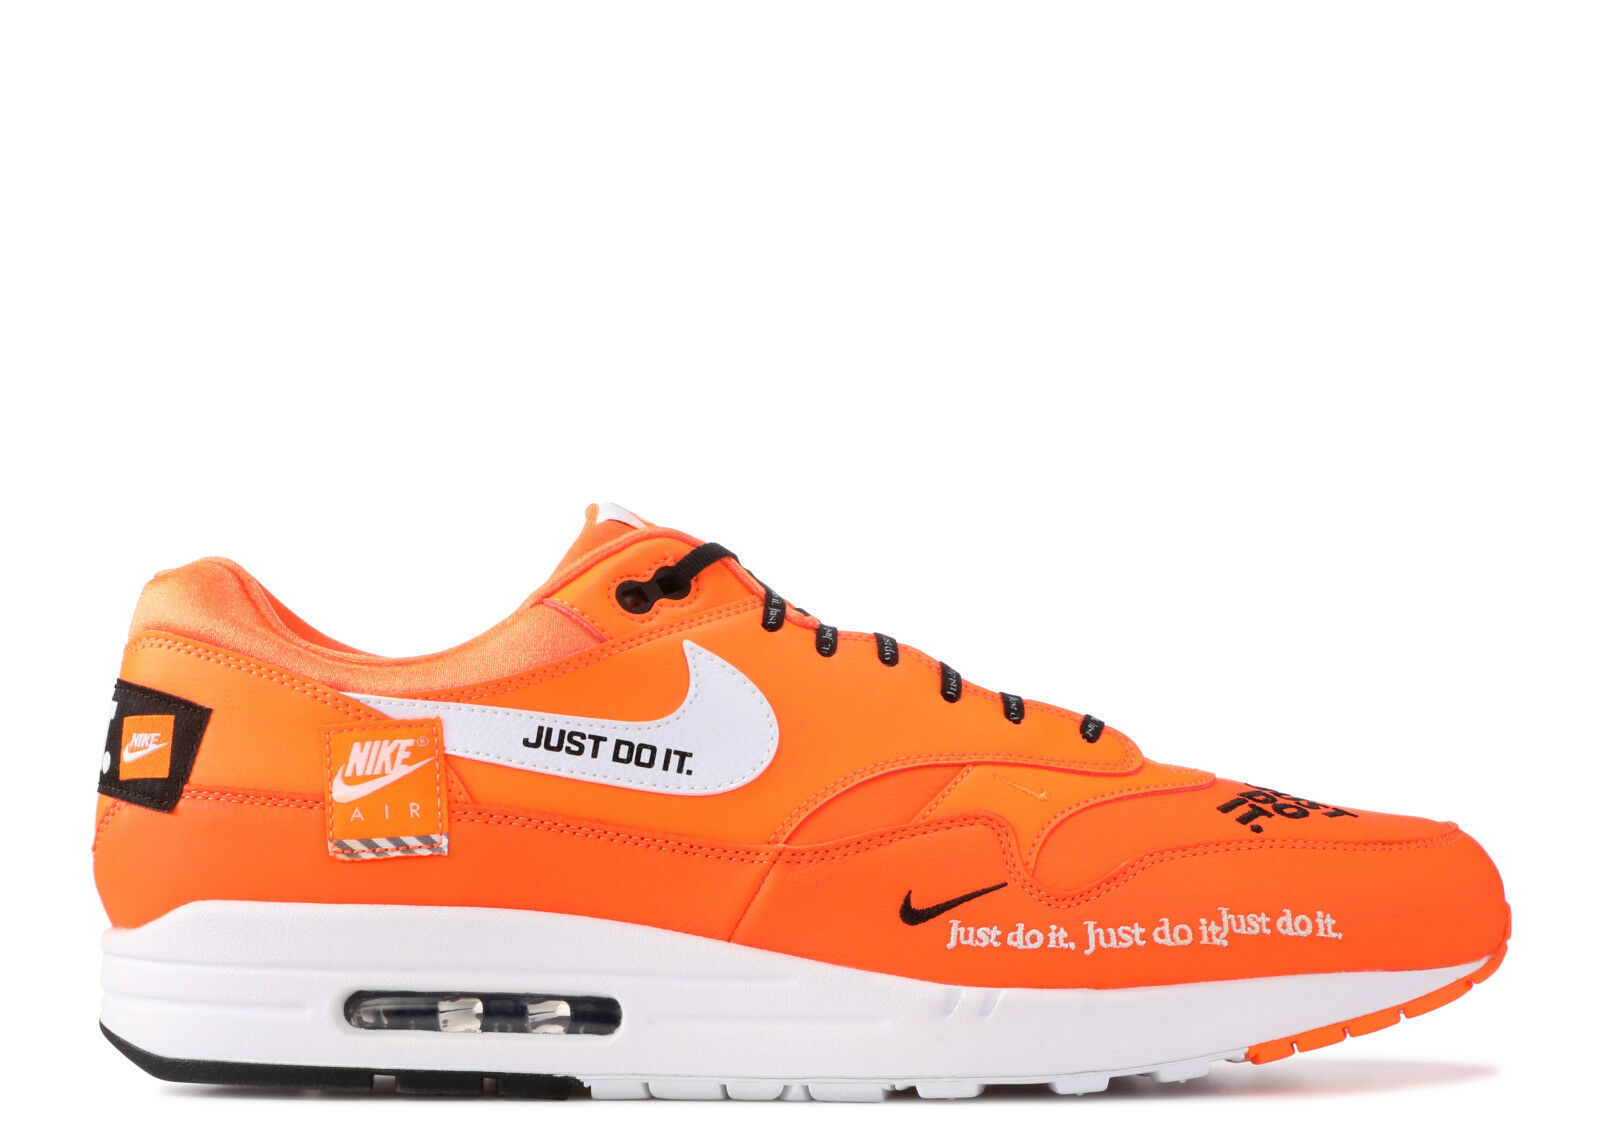 {AO1021-800} Mens Nike Air Max 1 SE Orange Just Do It Collection